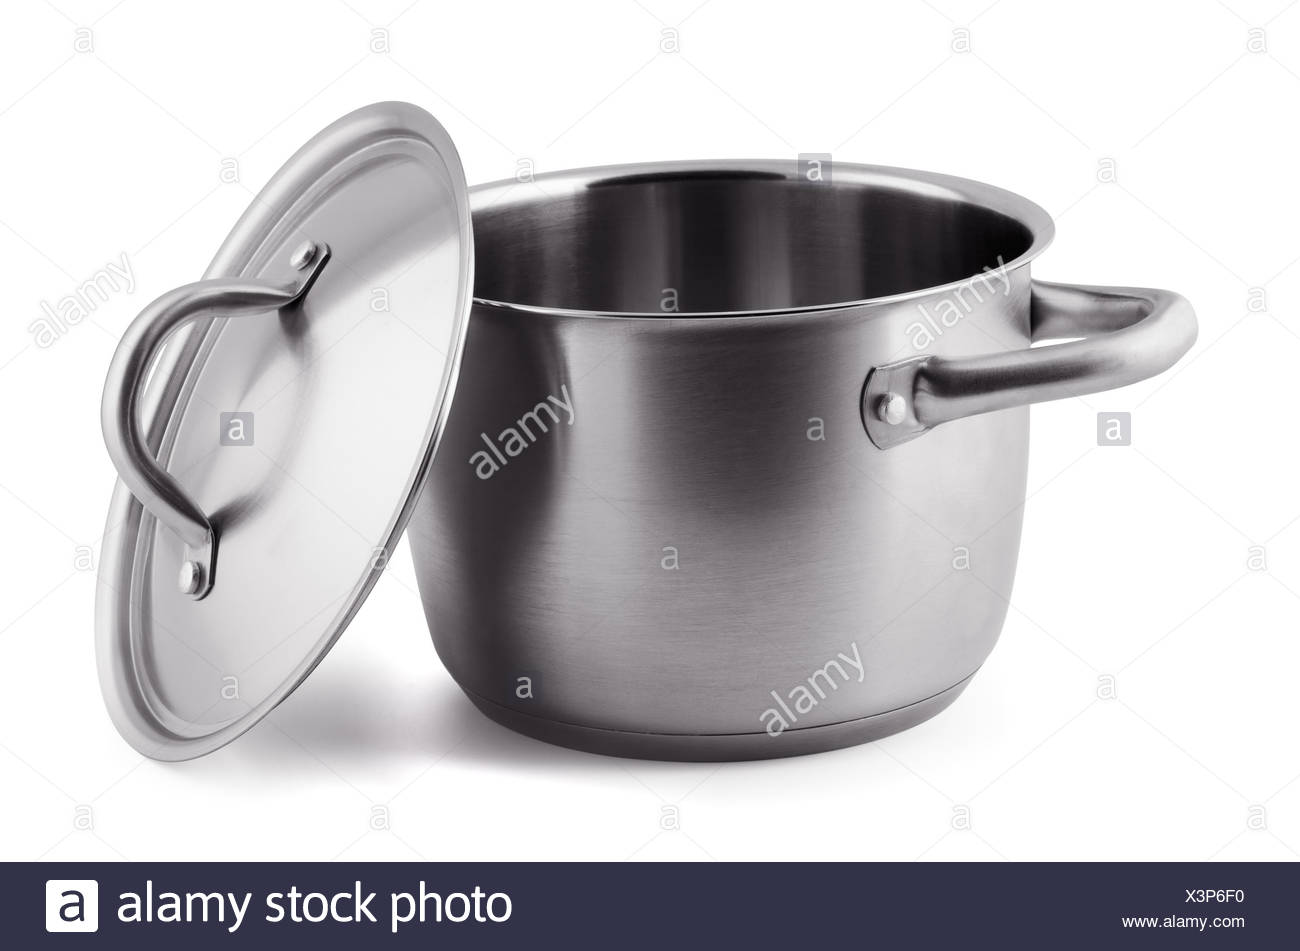 Cooking pot - Stock Image